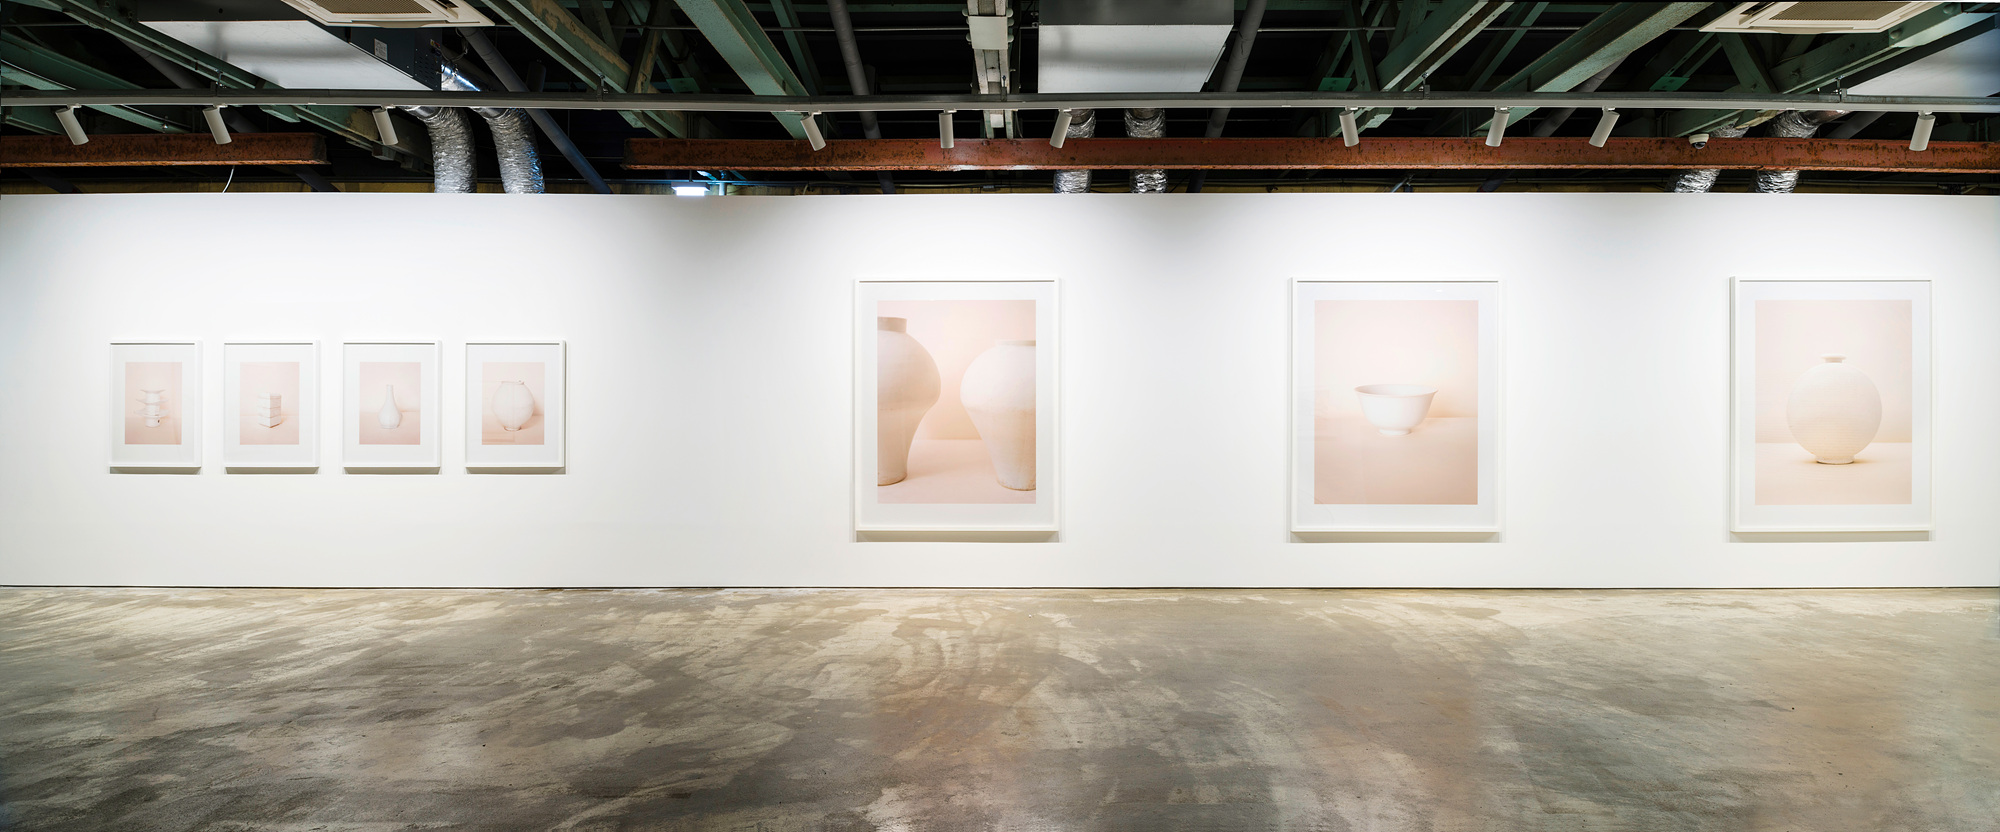 [Kukje Gallery] Koo Bohnchang_installation view_5.jpg